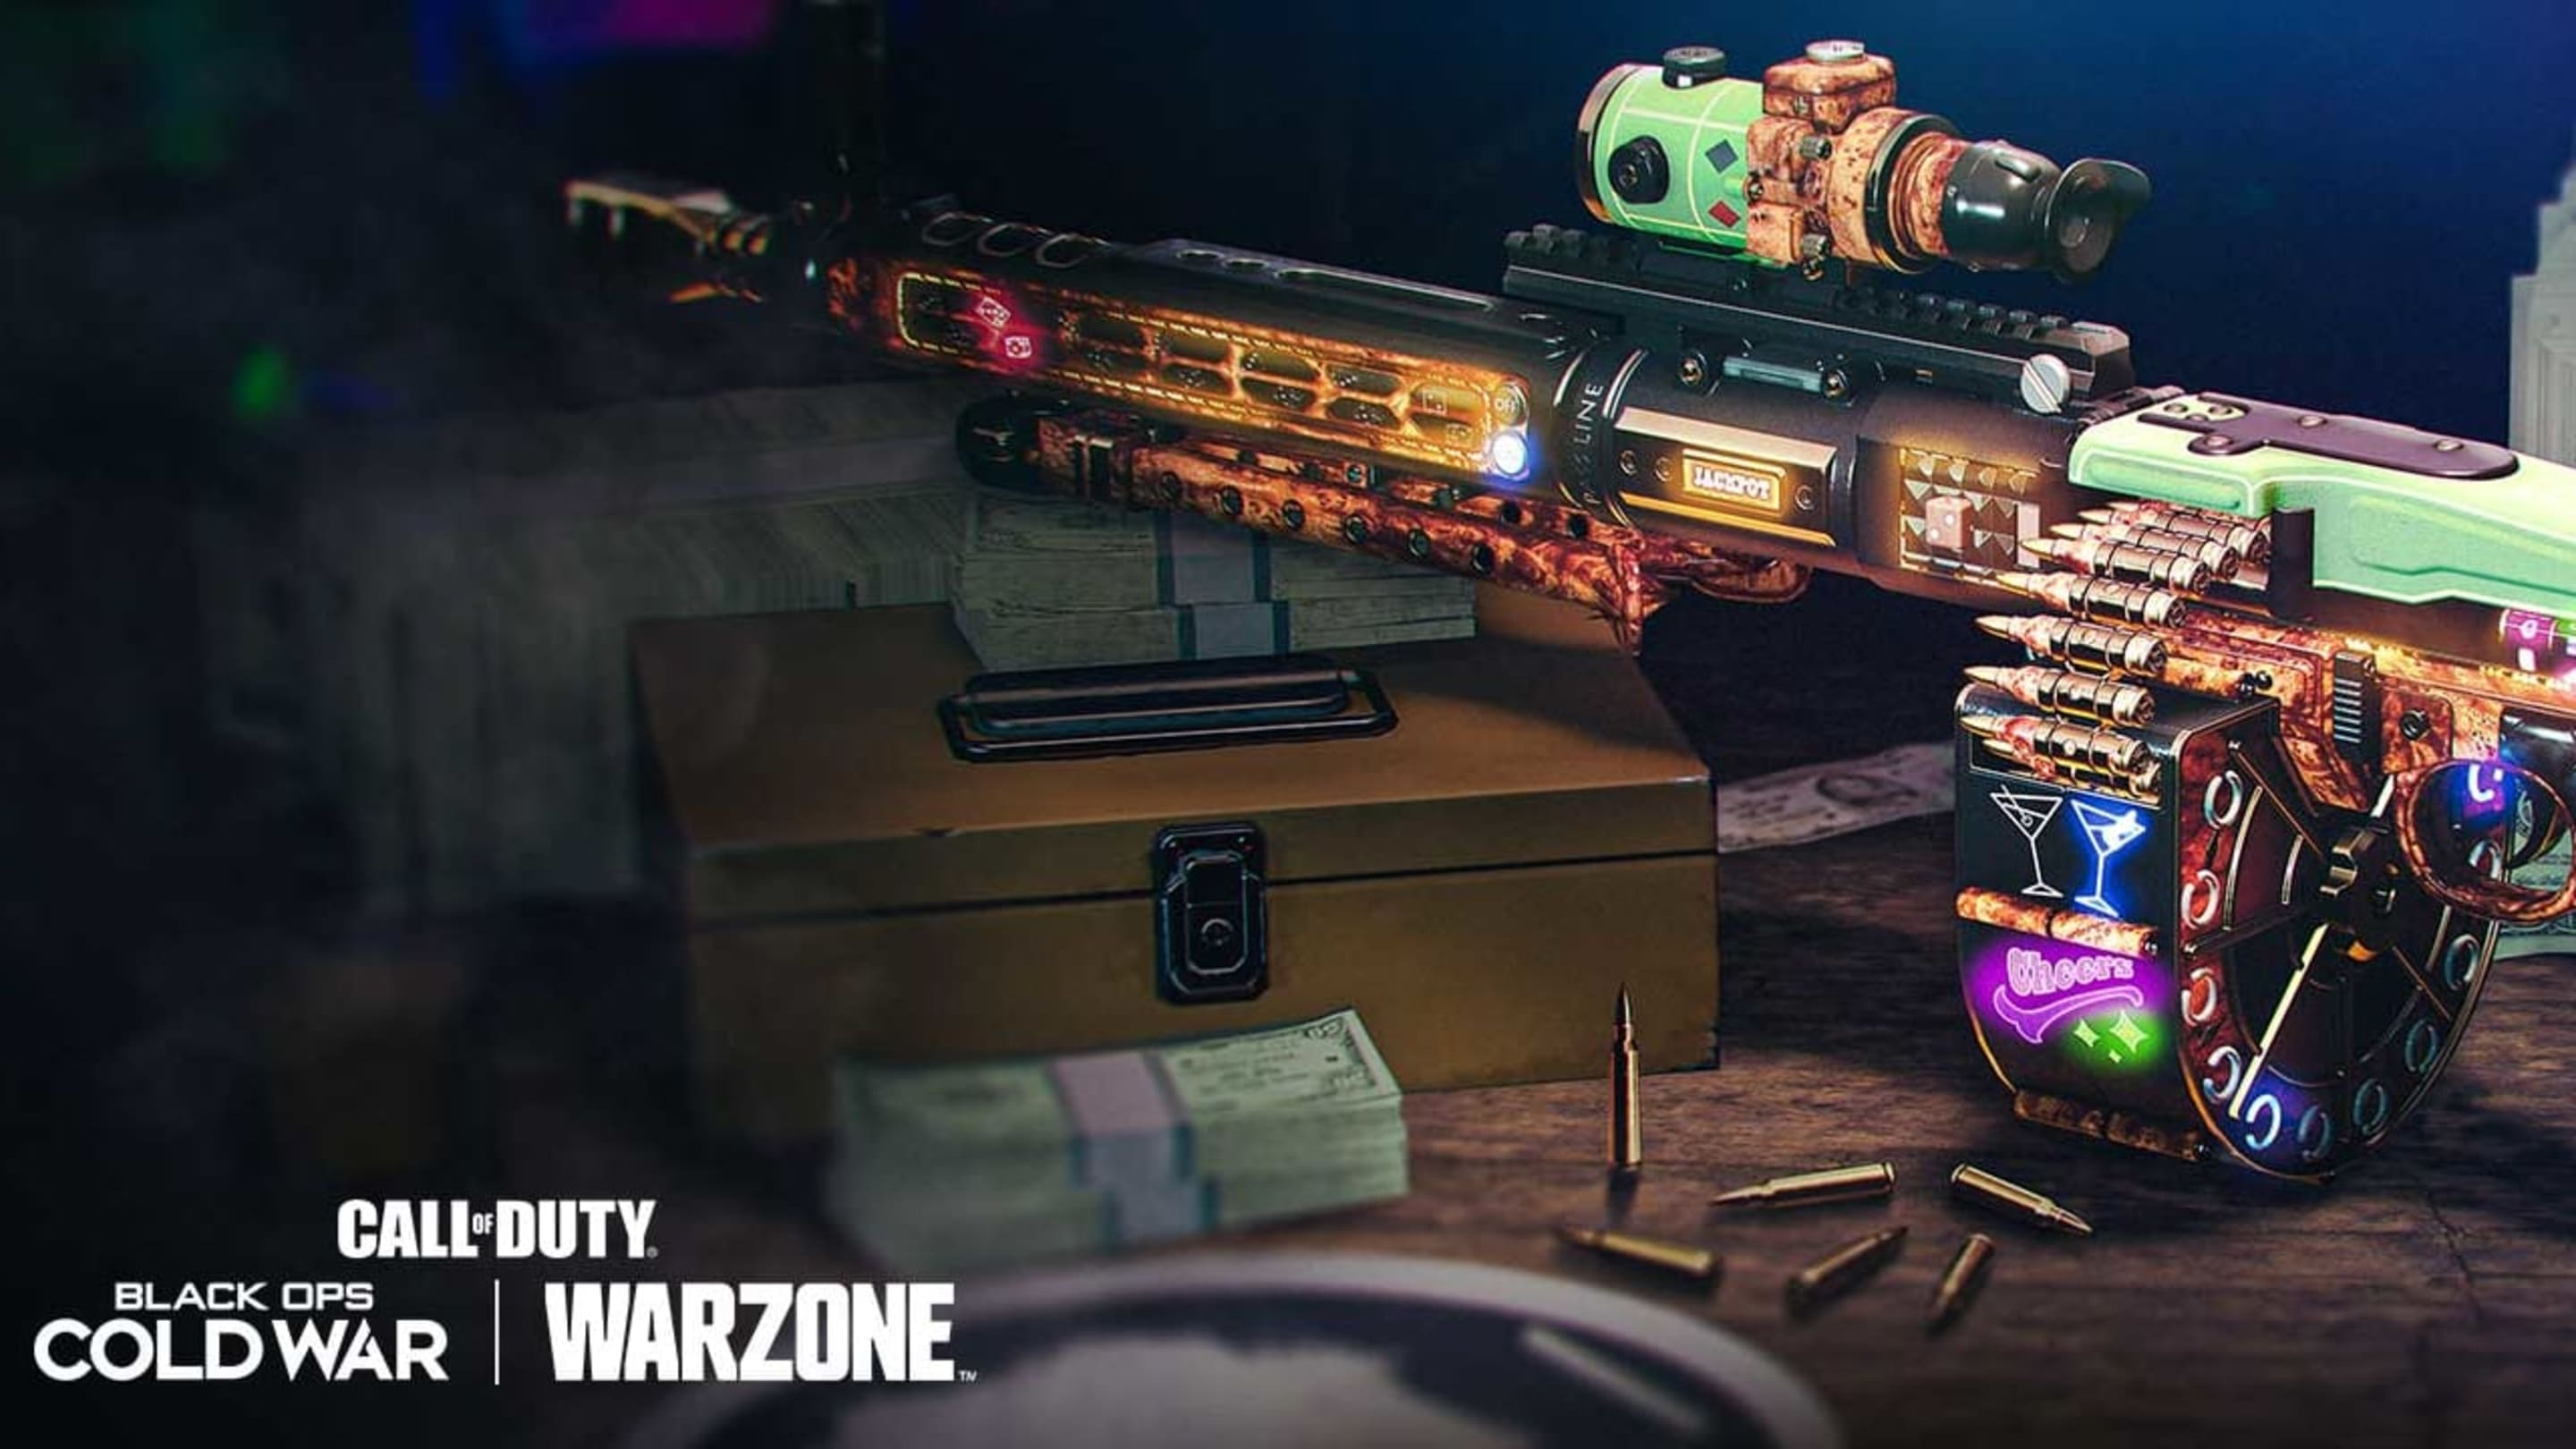 Best Warzone MG82 Loadout: Which Attachments to Use